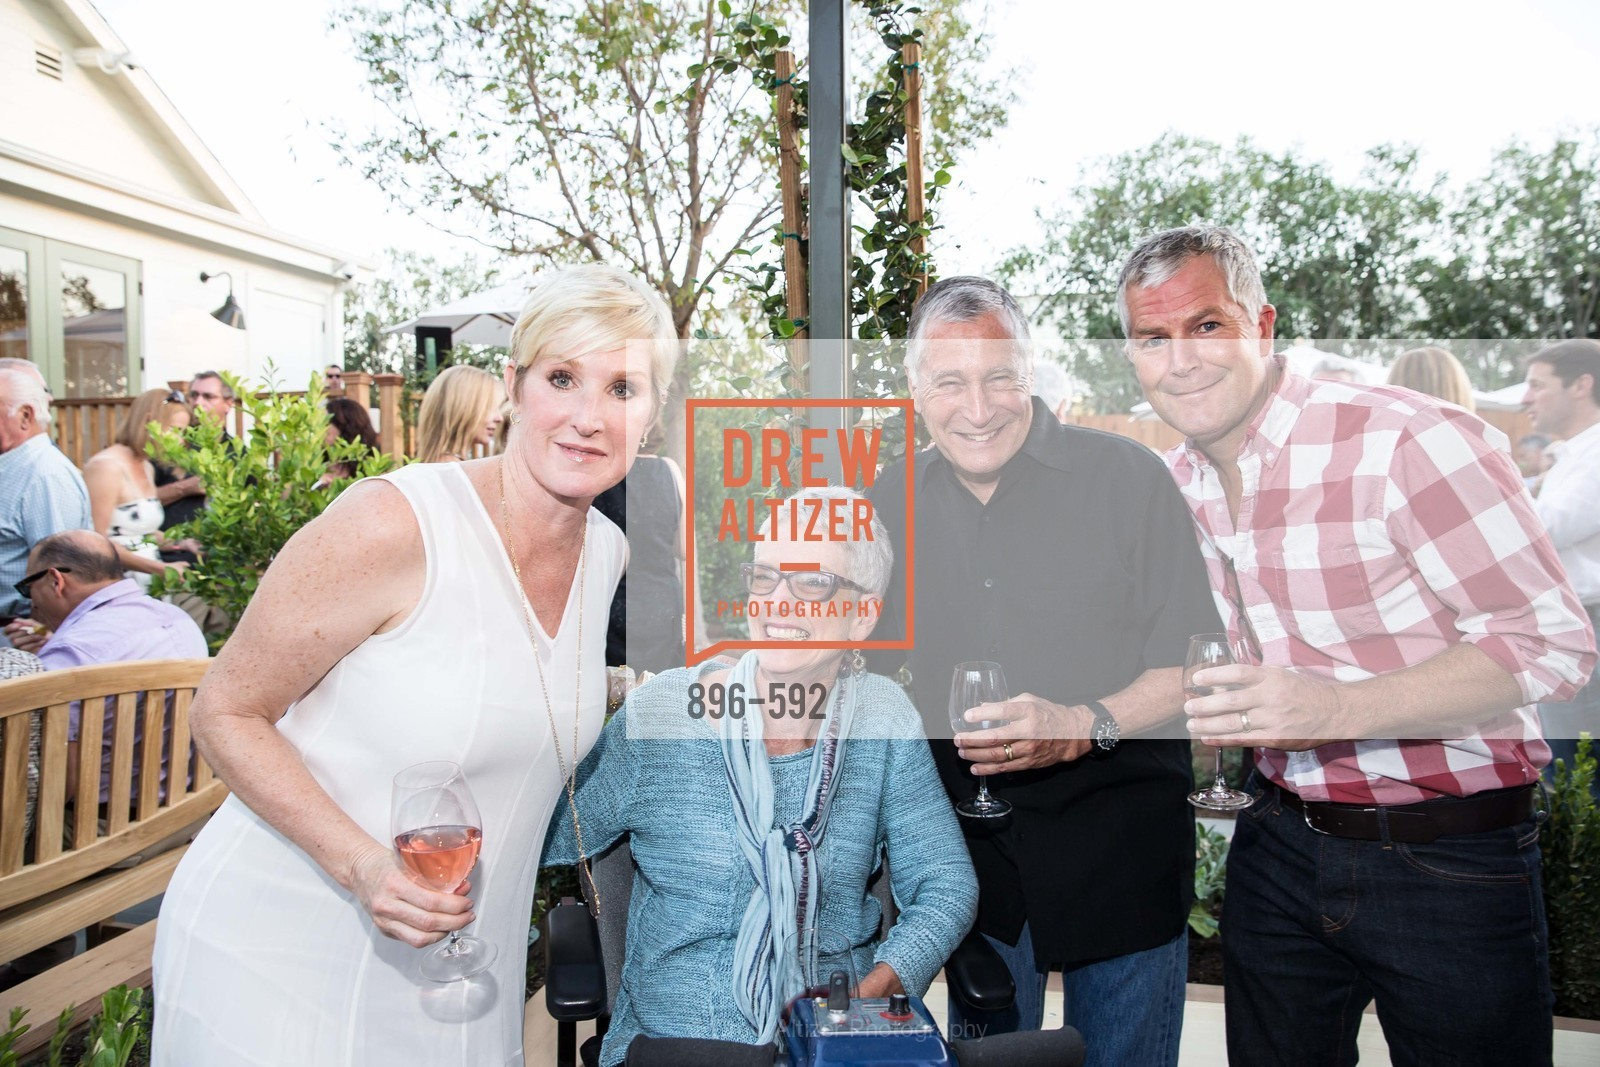 Christine Curry, Jeanne Allen, Chip Allen, John Curry, WILLIAMS-SONOMA Cochon BBQ Celebration, US, October 2nd, 2014,Drew Altizer, Drew Altizer Photography, full-service agency, private events, San Francisco photographer, photographer california